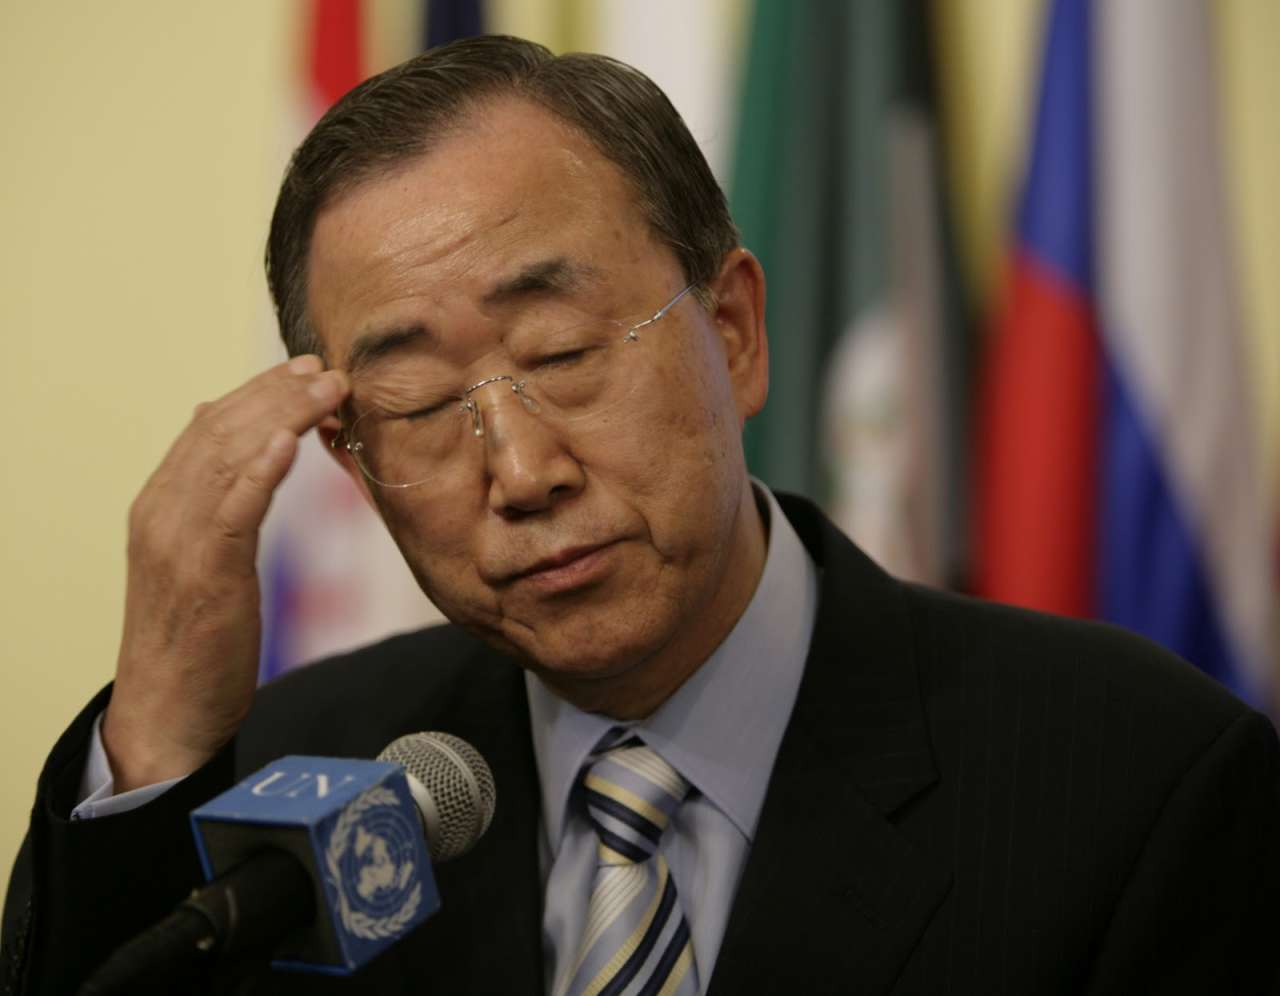 UN Secretary General condemns attack on funeral in Yemen blamed on Saudi Arabia